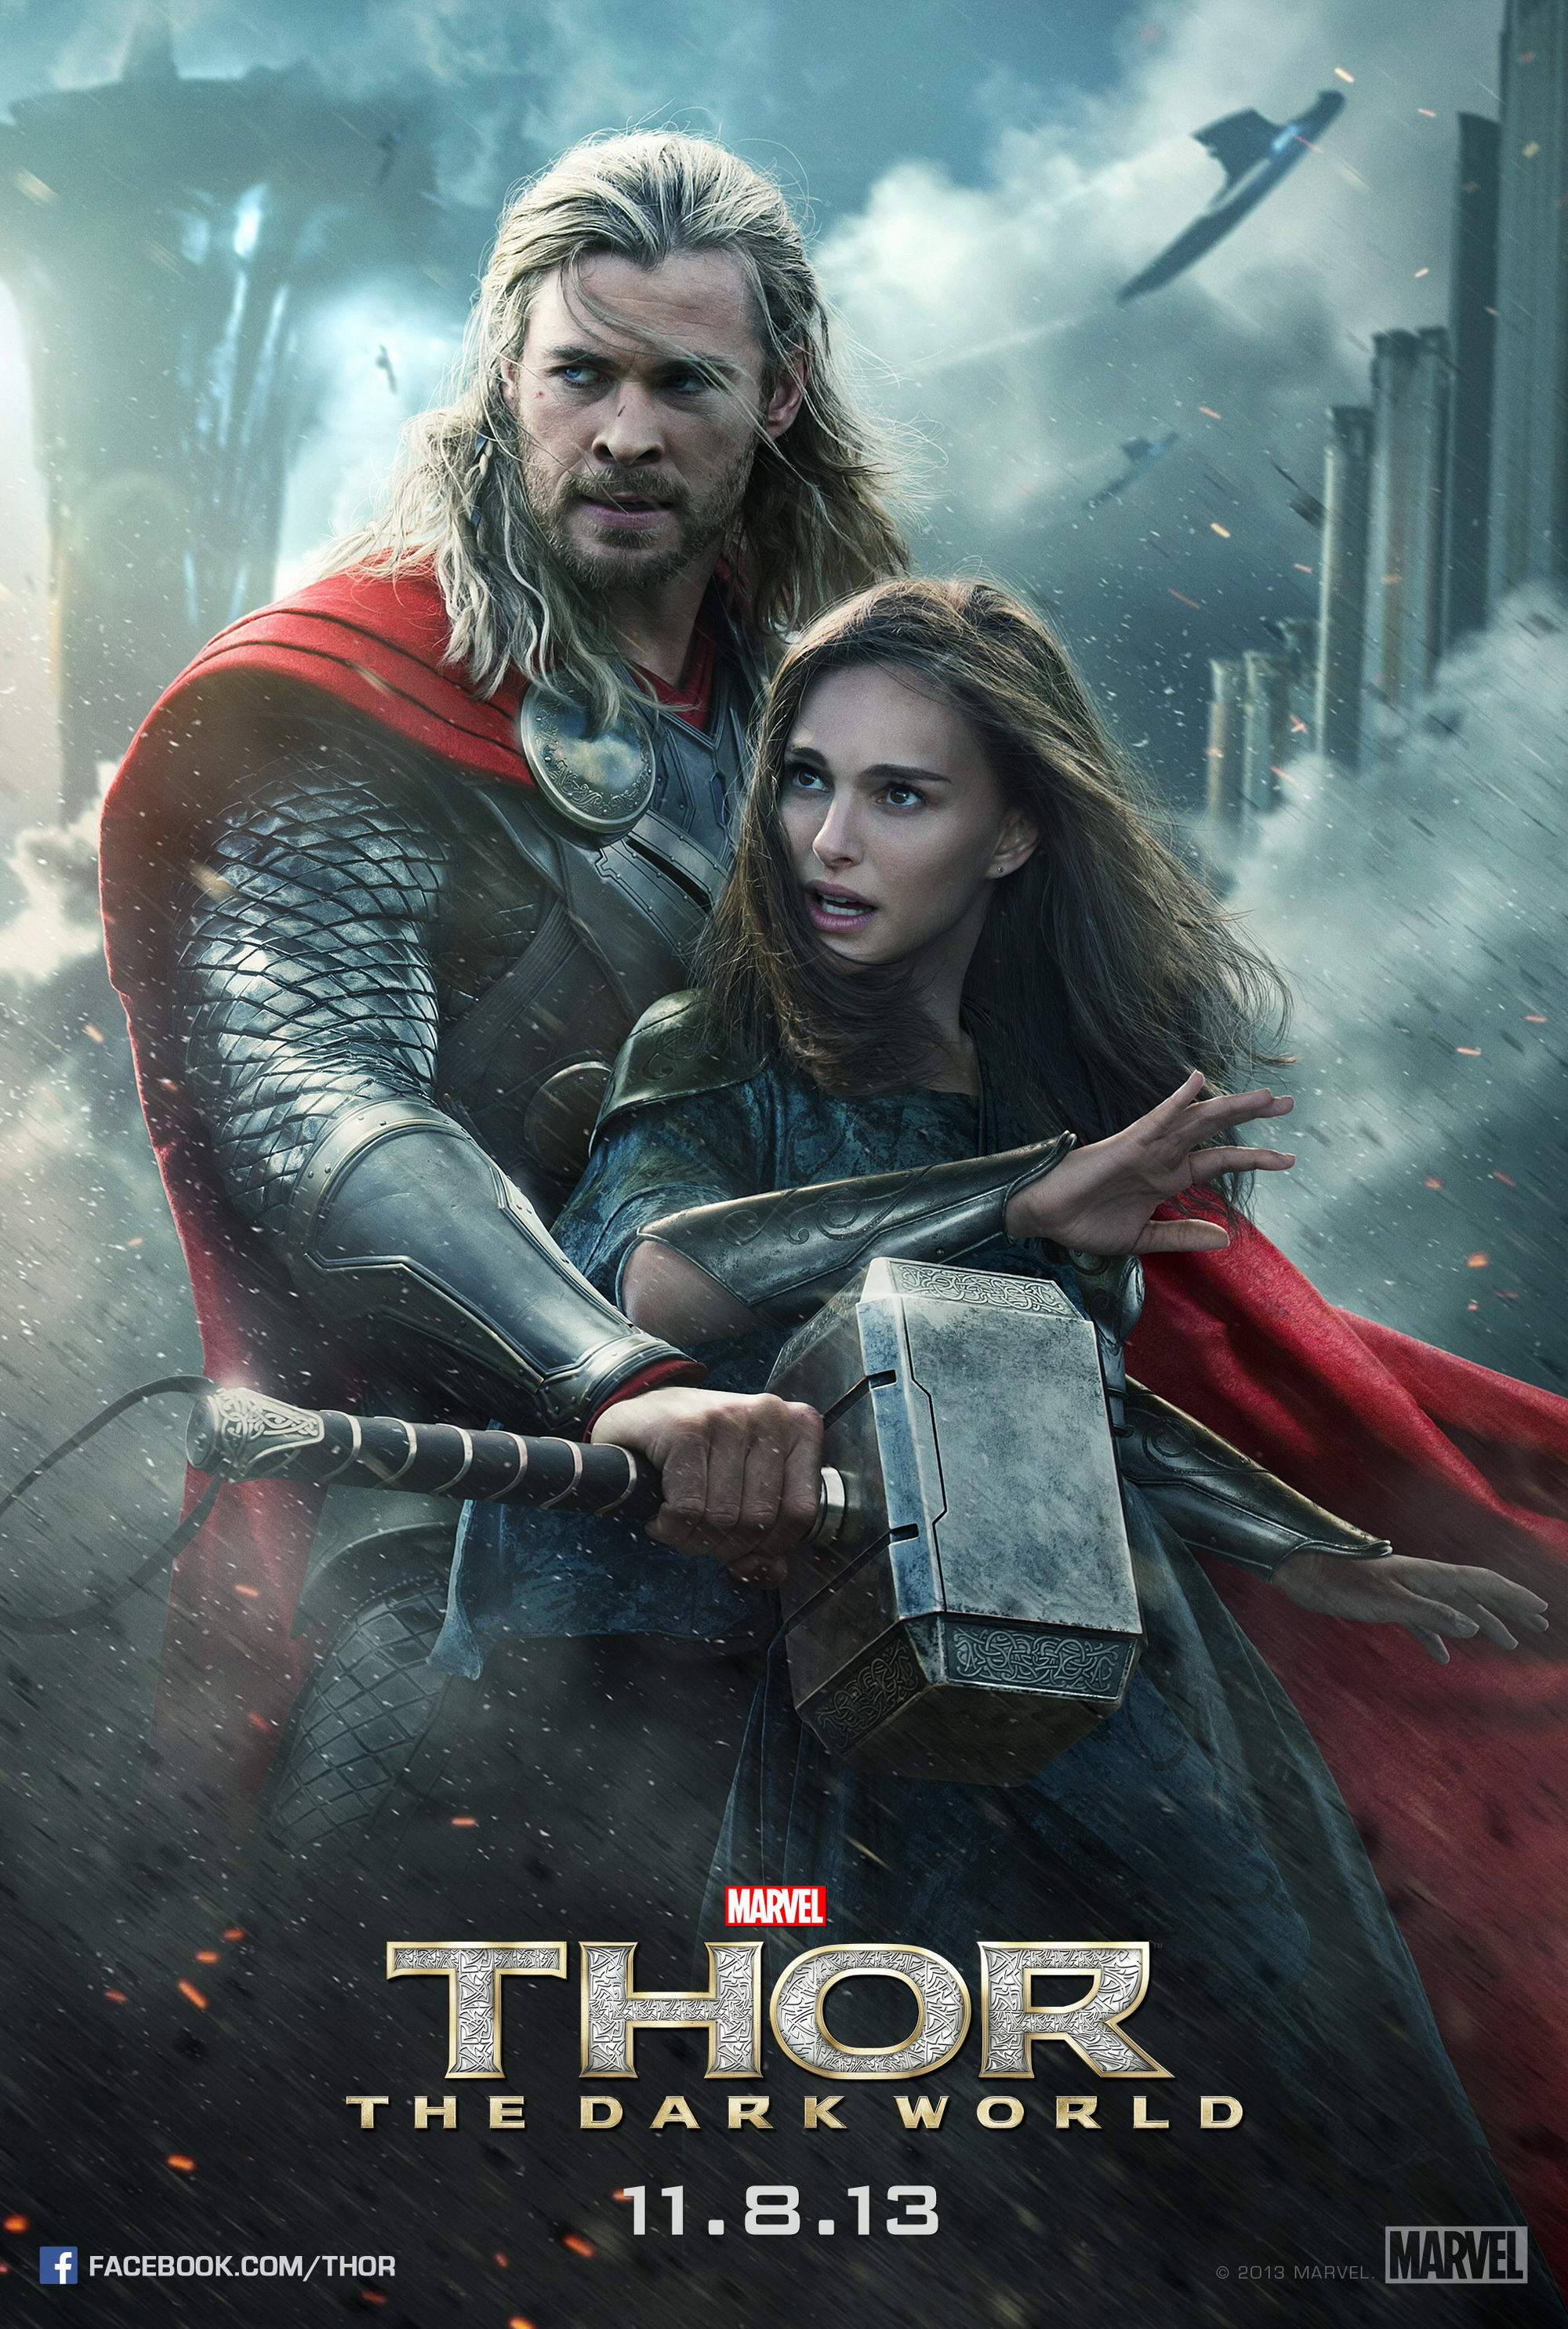 7-Thor_The_Dark_World_poster_006